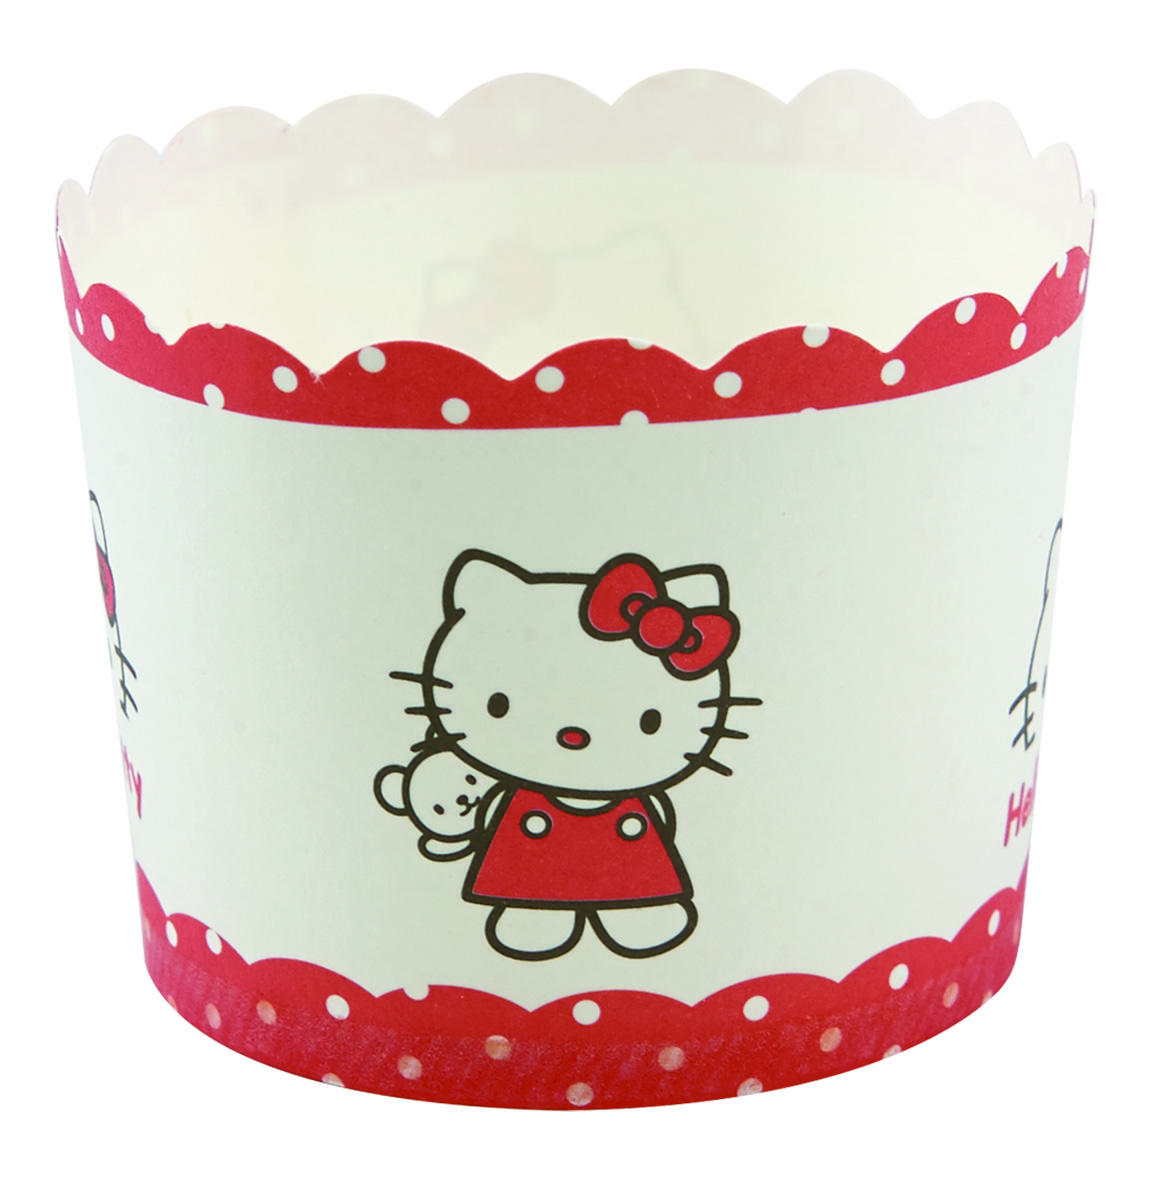 Round Food Grade Material Cake Baking Paper Cup Fit Wedding Home Party Two Size Choice